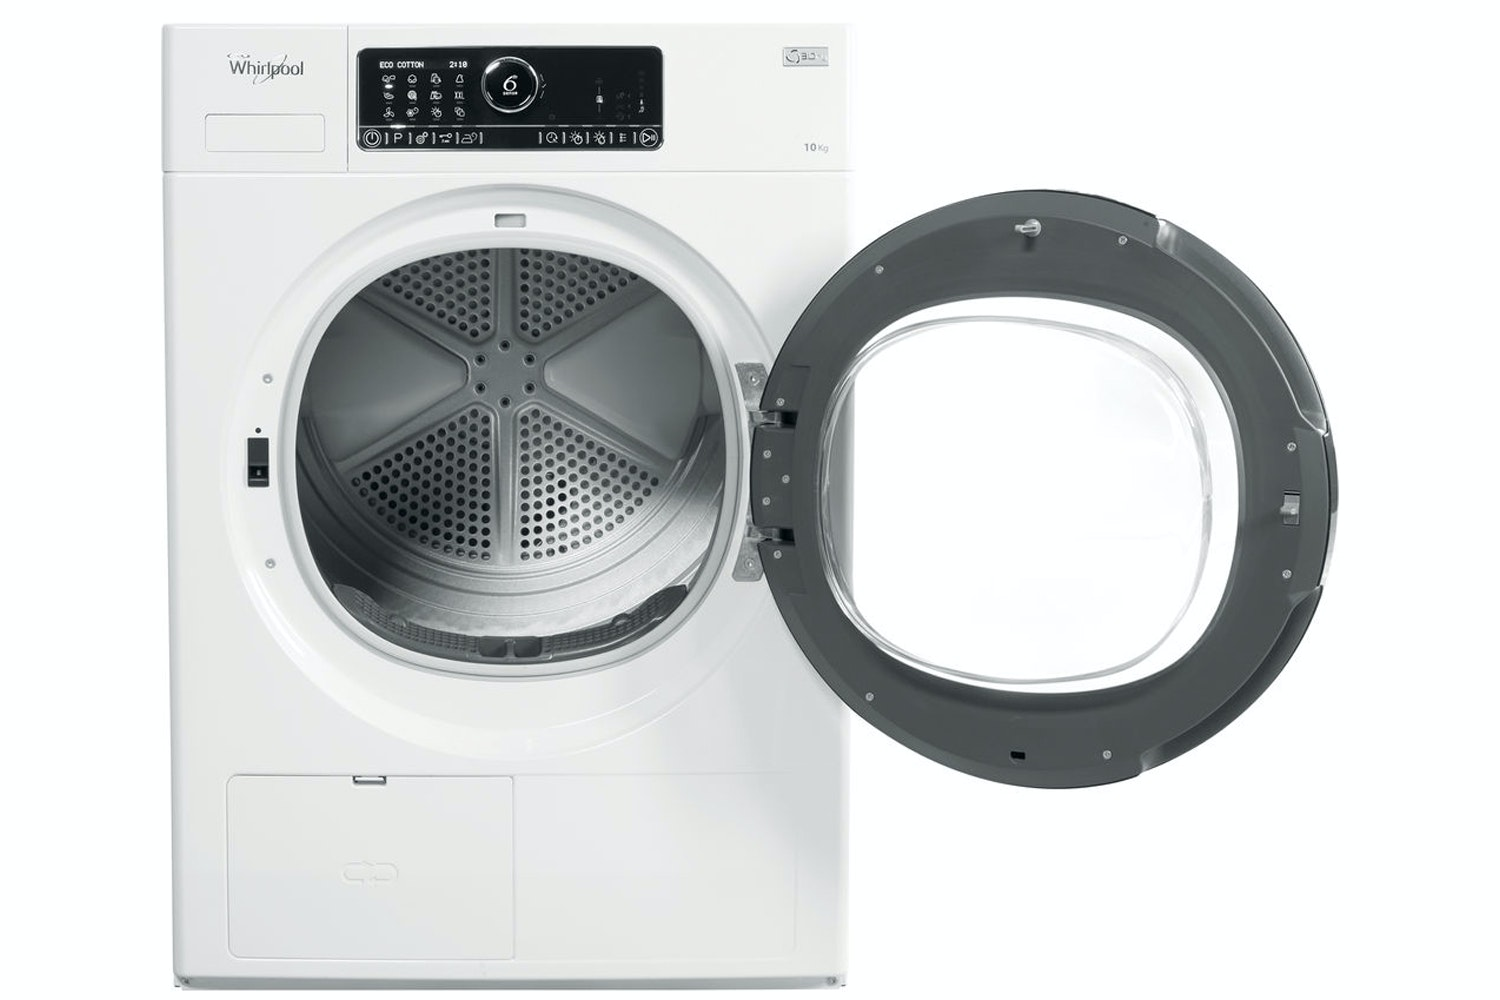 Whirlpool 10kg 6th Sense Heat Pump Condenser Dryer | HSCX10431